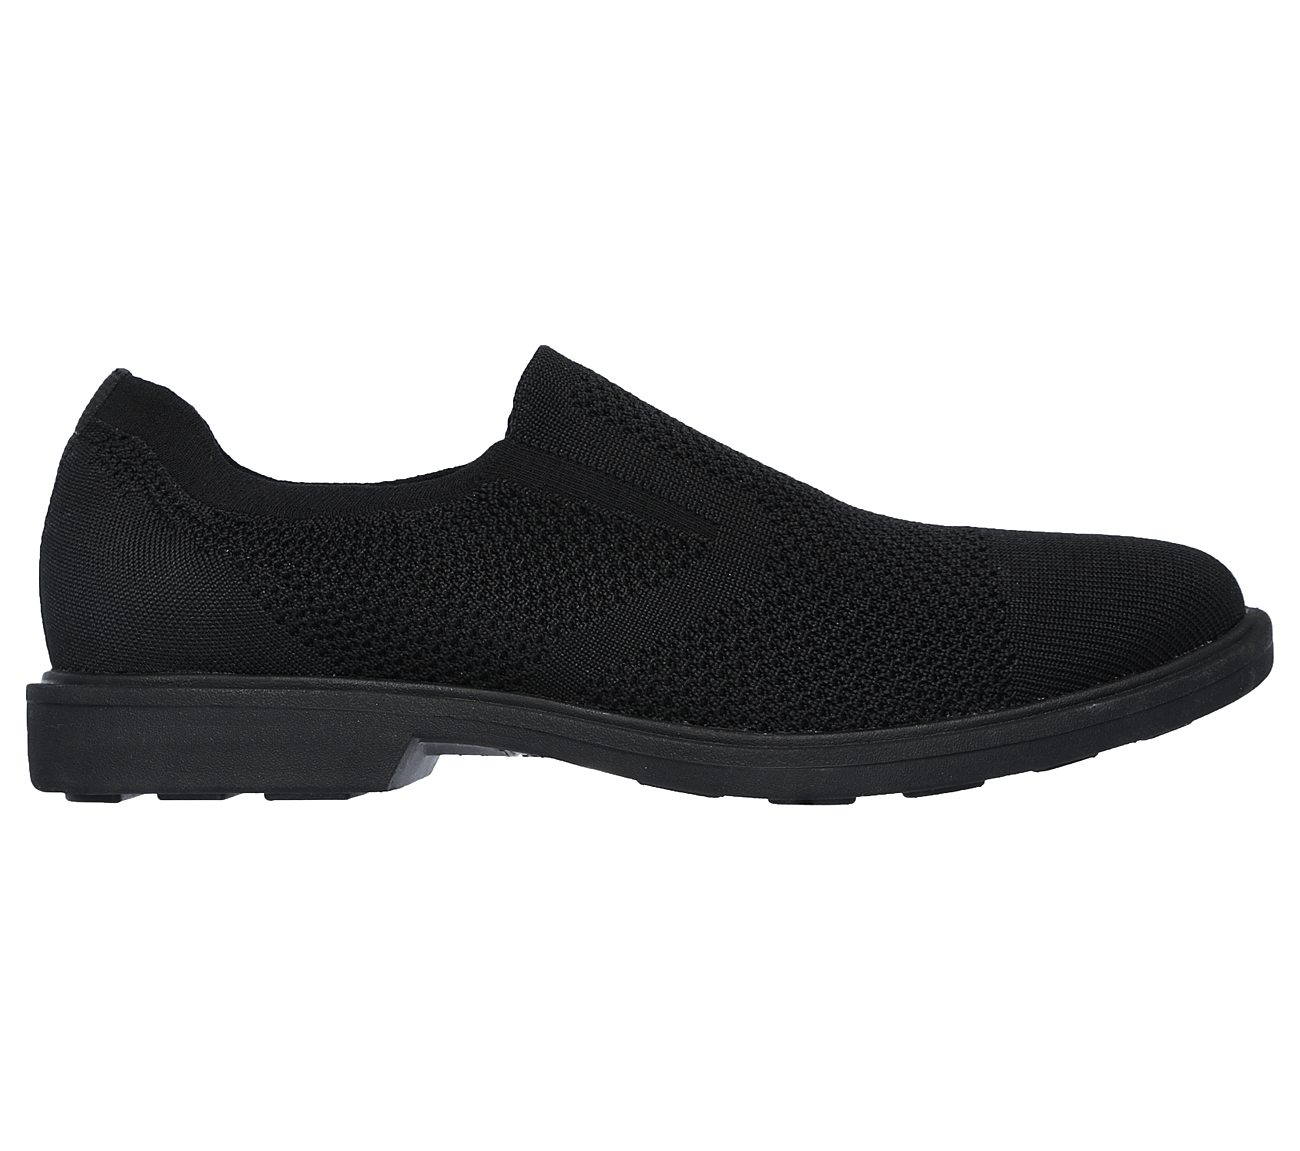 98+ Skechers Kitchen Shoes - Skechers Relaxed Fit Expected Gomel ...